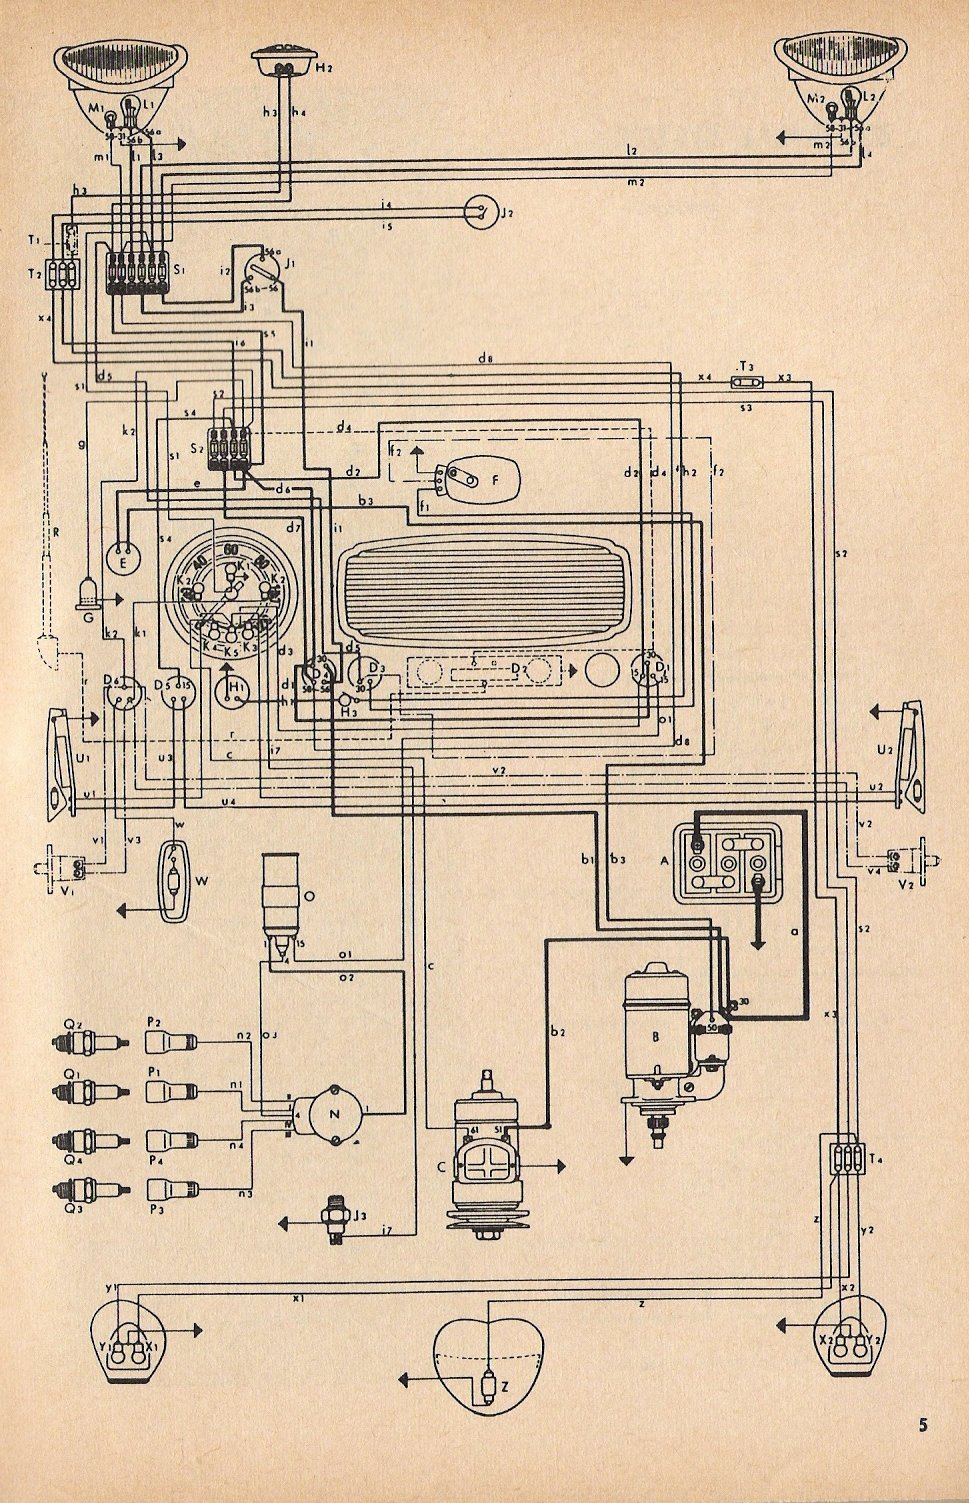 Mercedes Engine Wiring Harness For 1965 Great Installation Of Replacing Loom Thesamba Com Type 1 Diagrams Rh Diagram Replacement